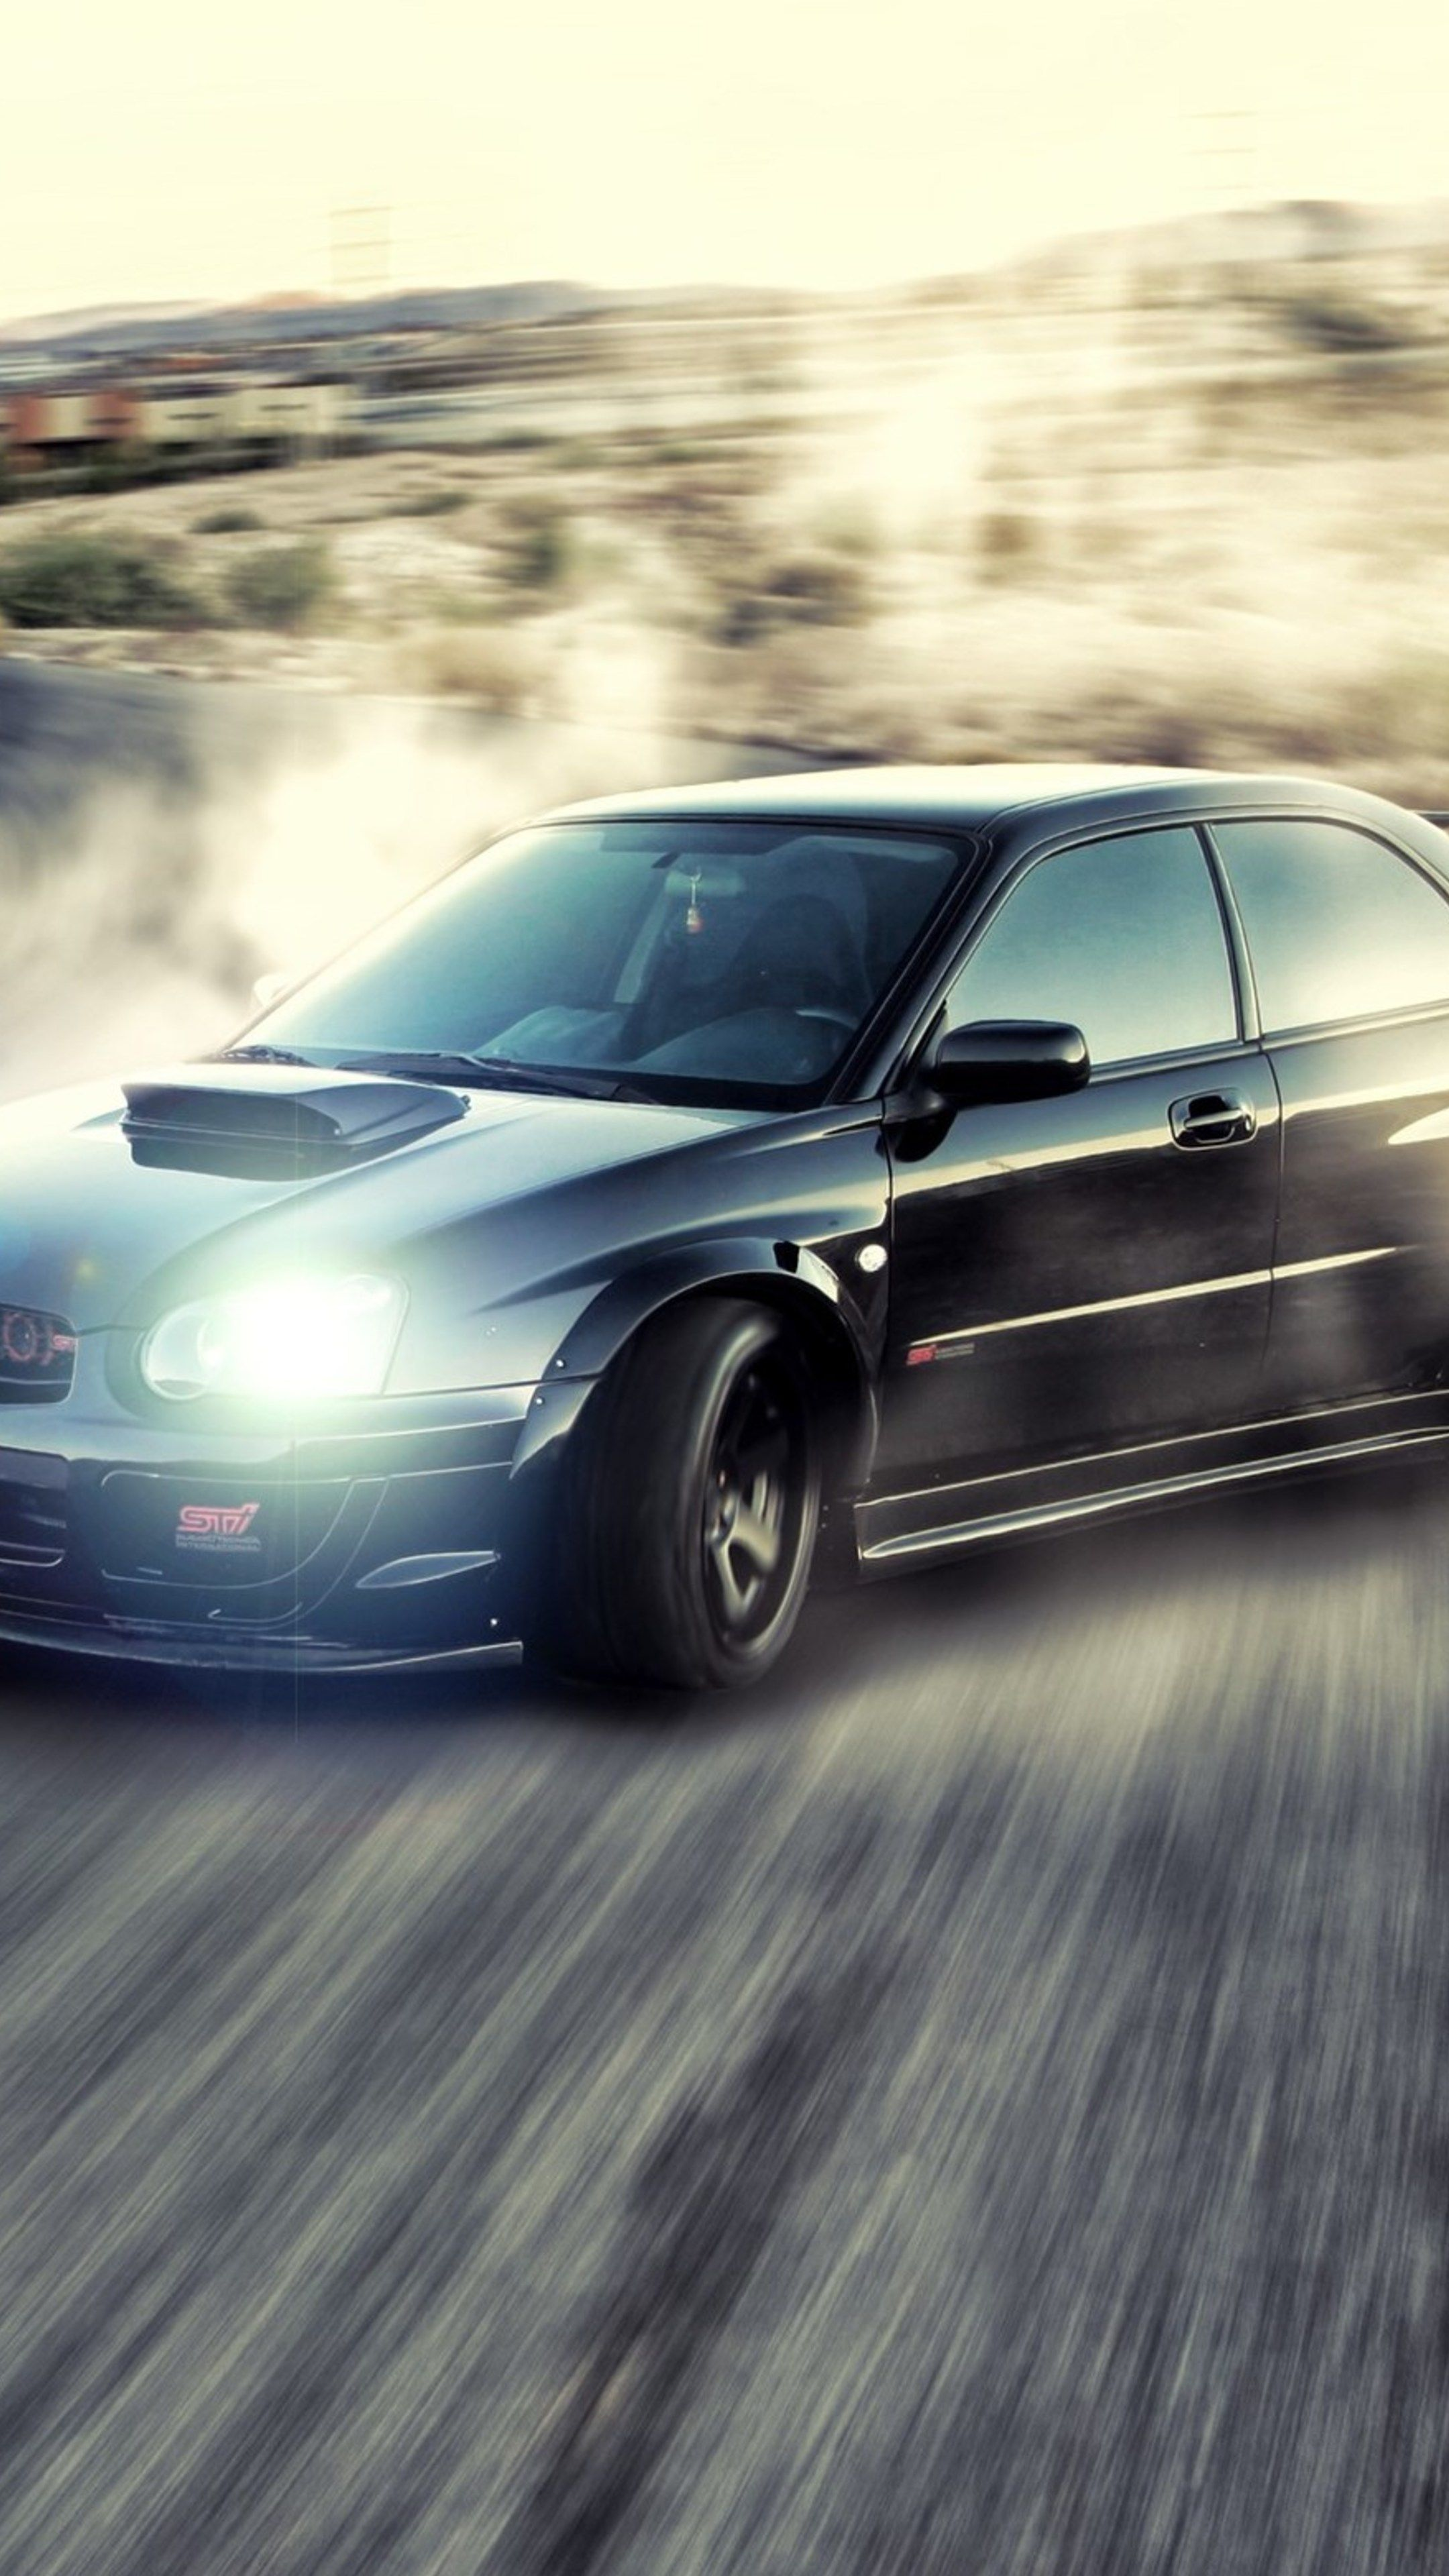 Cars Subaru Drifting Wallpapers Carros Carros De Sonho Auto